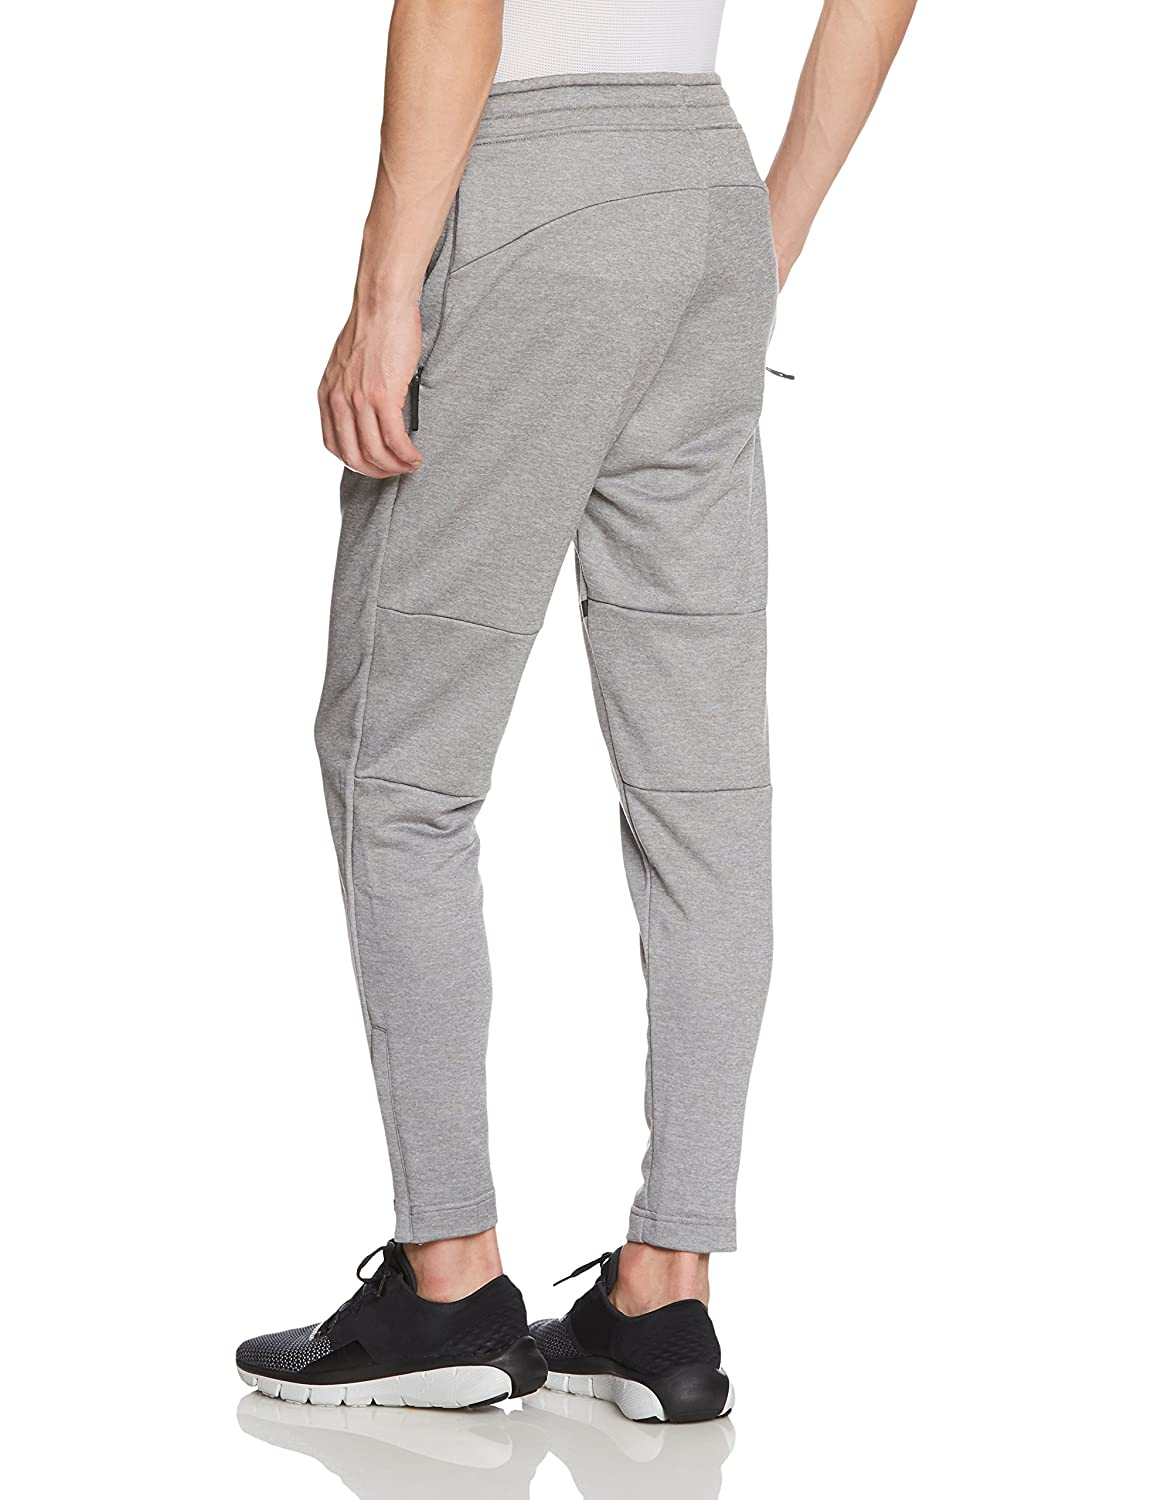 Under Armour MK1 Terry Tapered Pant Pantalón Largo, Hombre, Azul (487), S